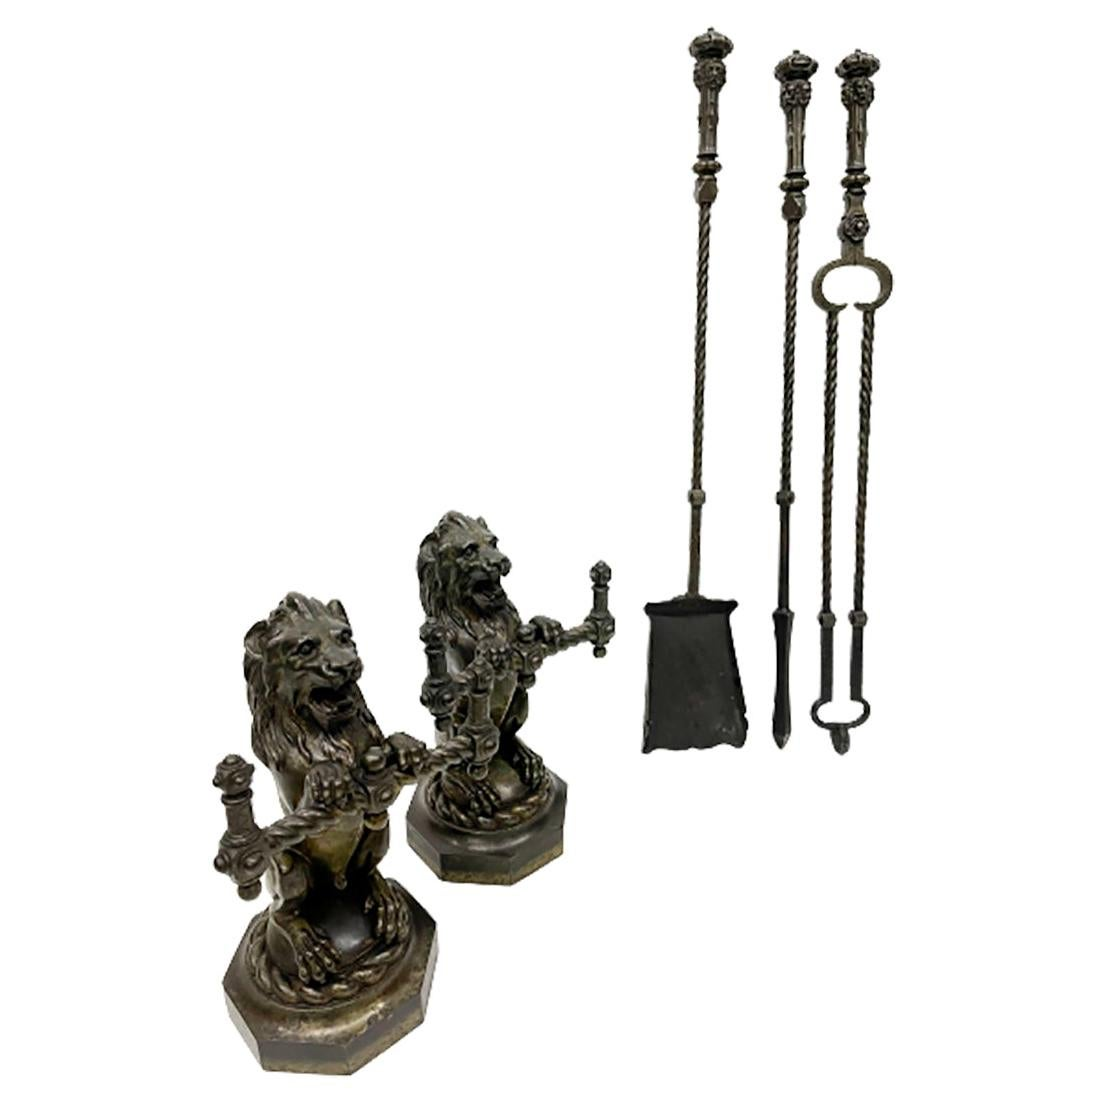 19th French Century Cast Iron Fire Dogs, Andirons with tools